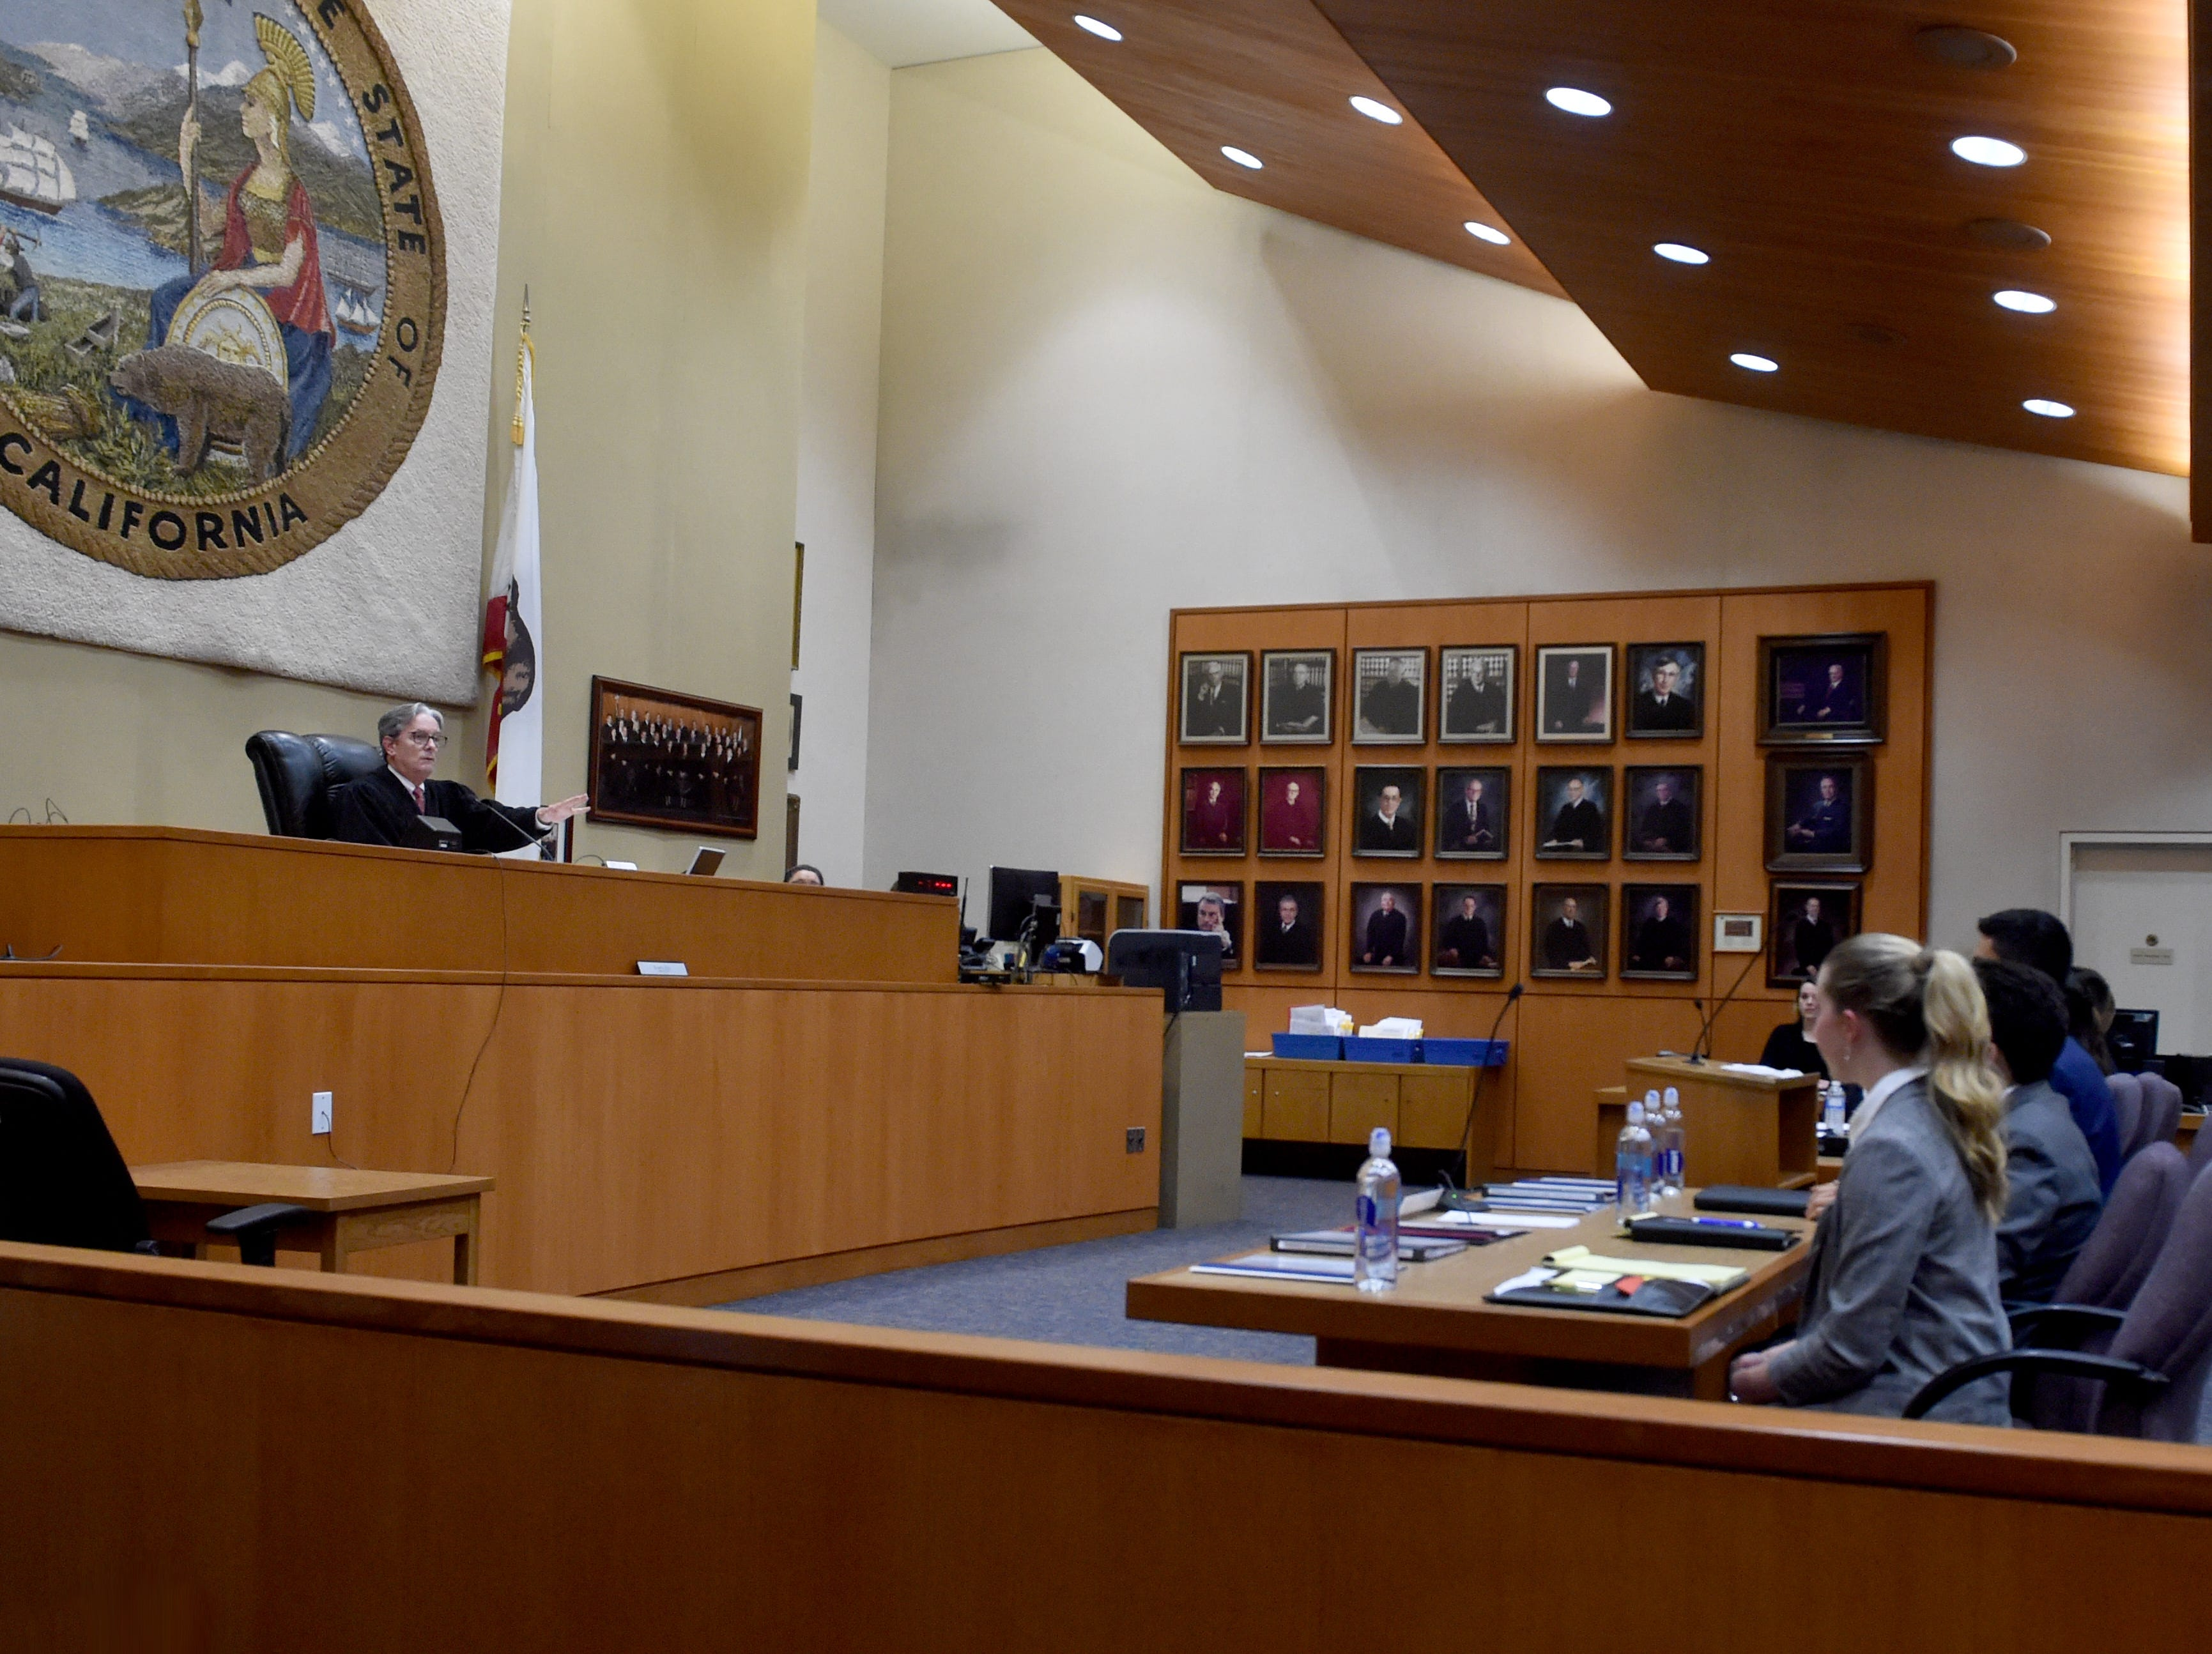 Judge Kent Kellegrew speaks with teams from Trinity Pacific Christian School in Thousand Oaks and St. Bonaventure High School in Ventura during the final round of the Ventura County Mock Trial on Thursday at the Ventura County Superior Court.